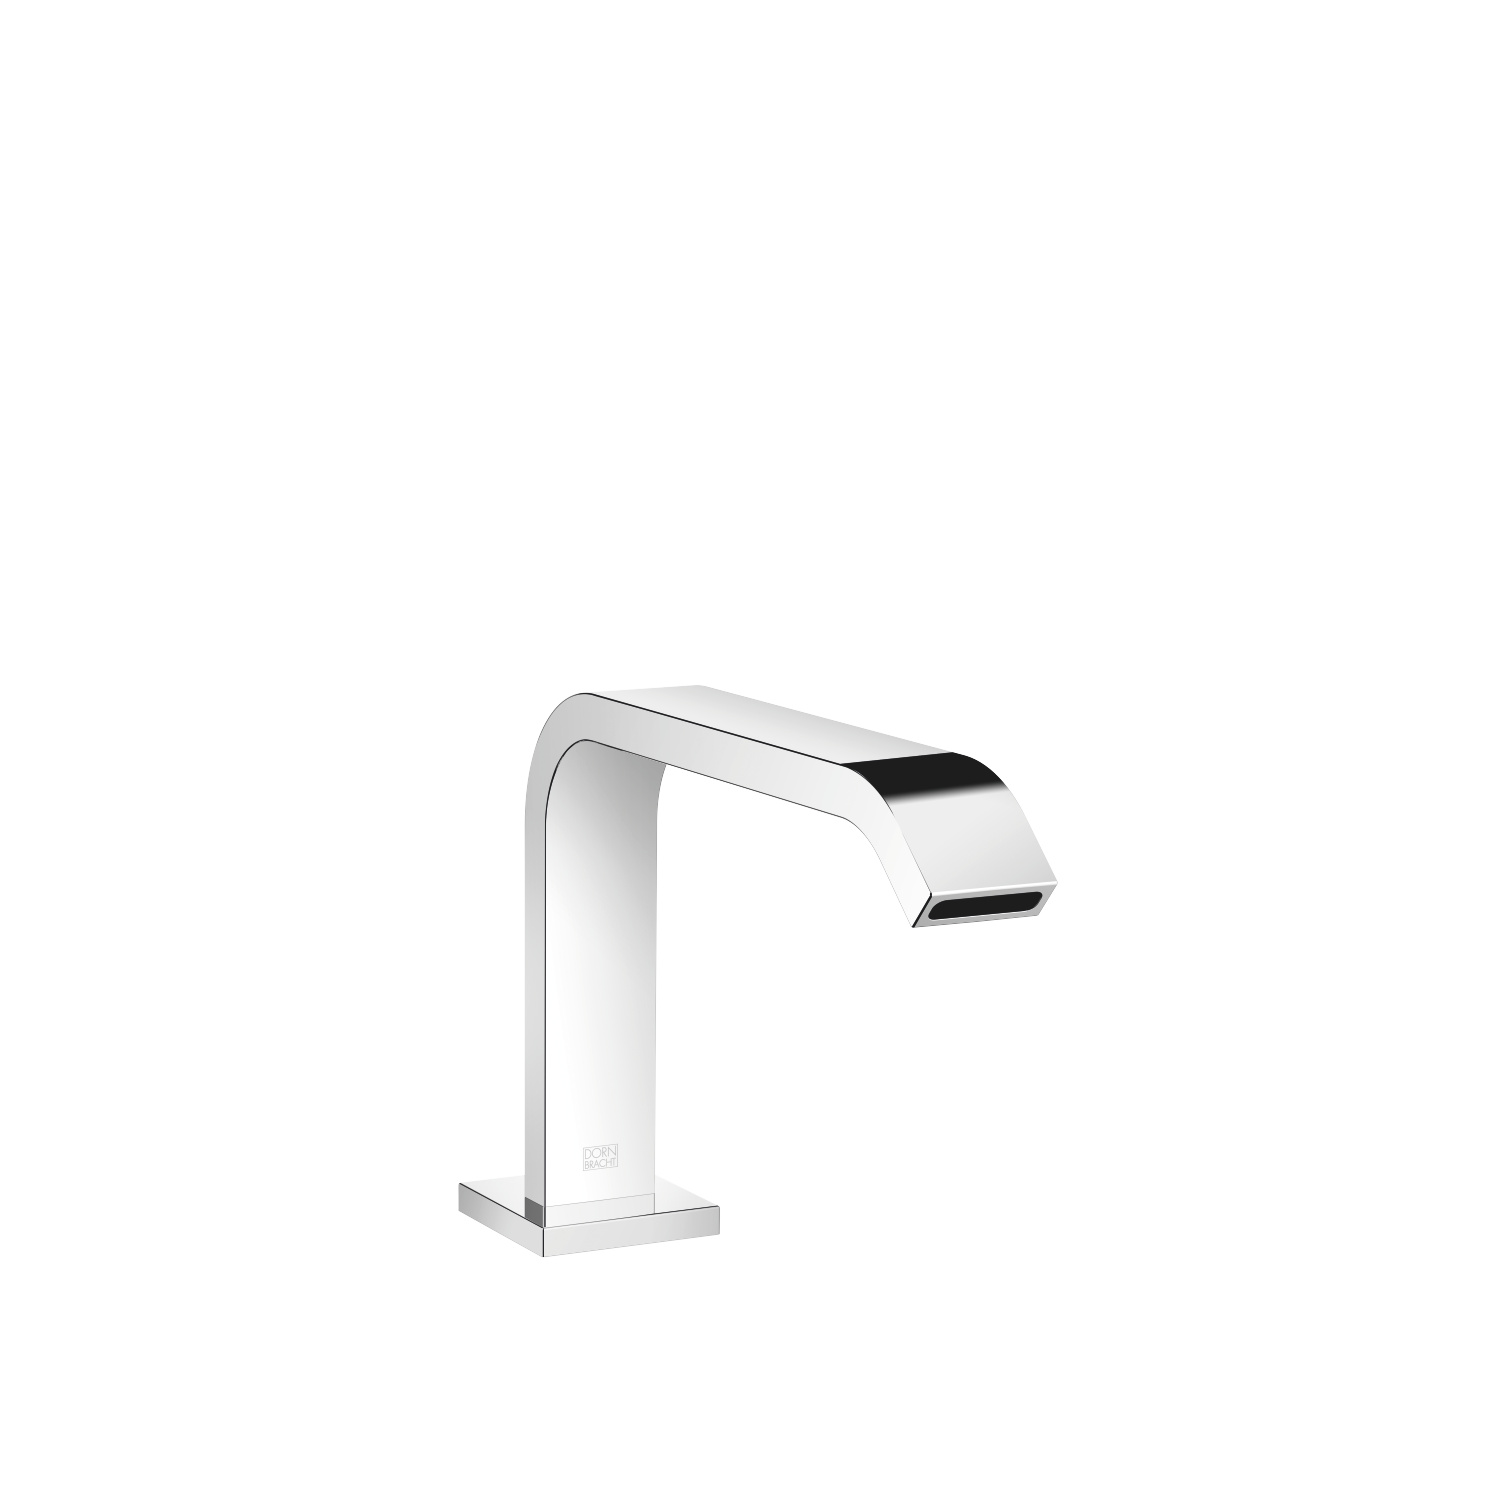 Tub spout with diverter for deck-mounted installation - polished chrome